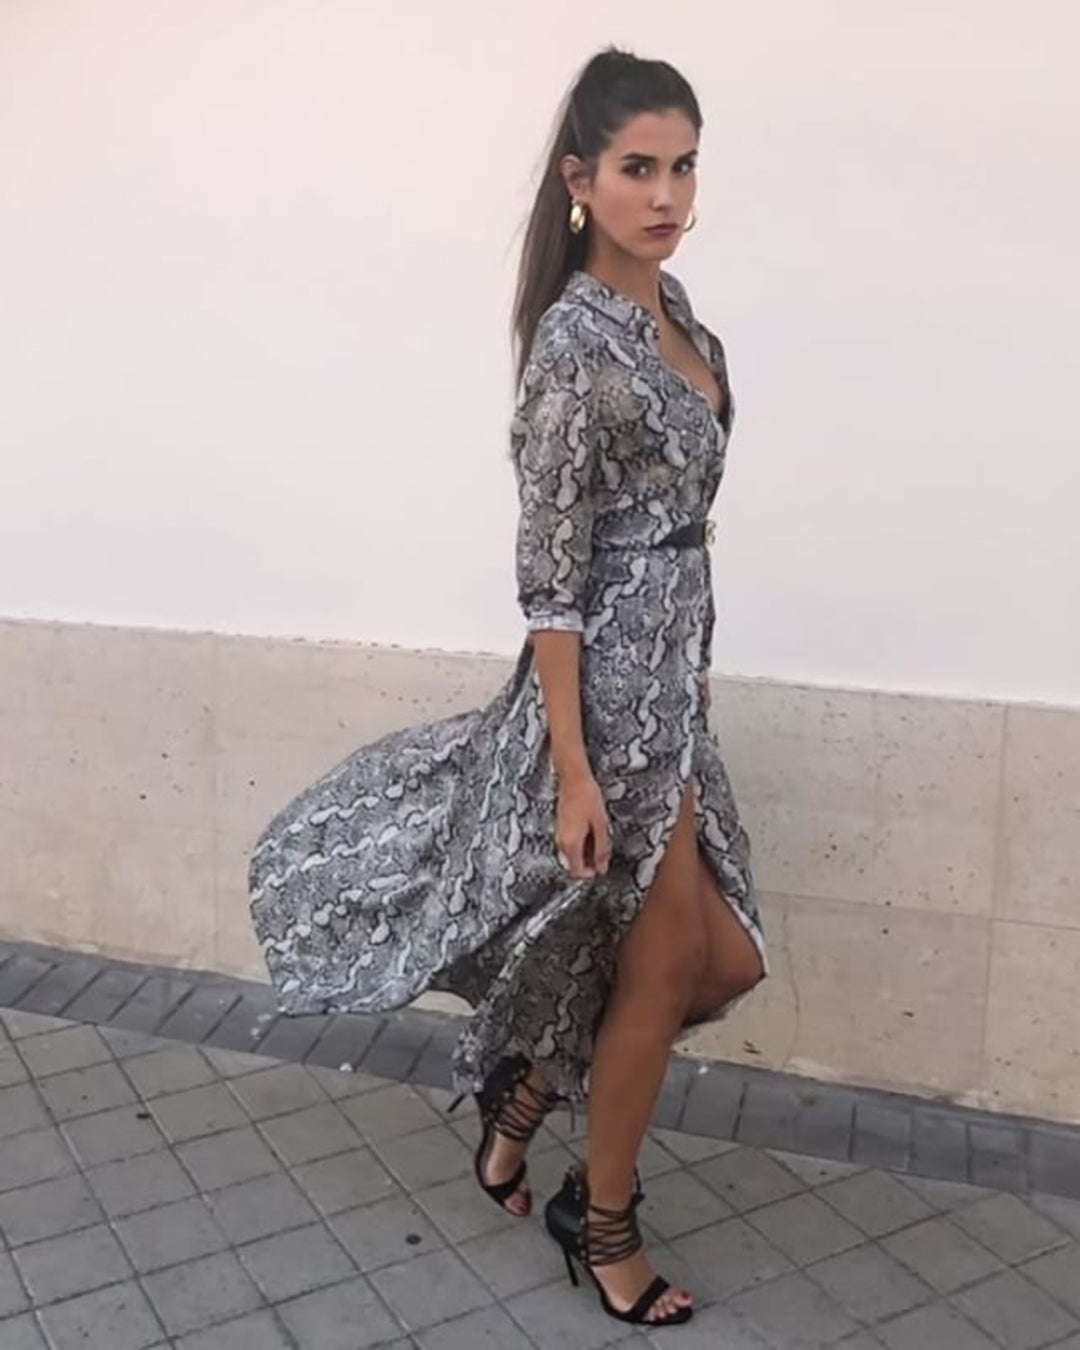 Veronica's Snakeskin Dress